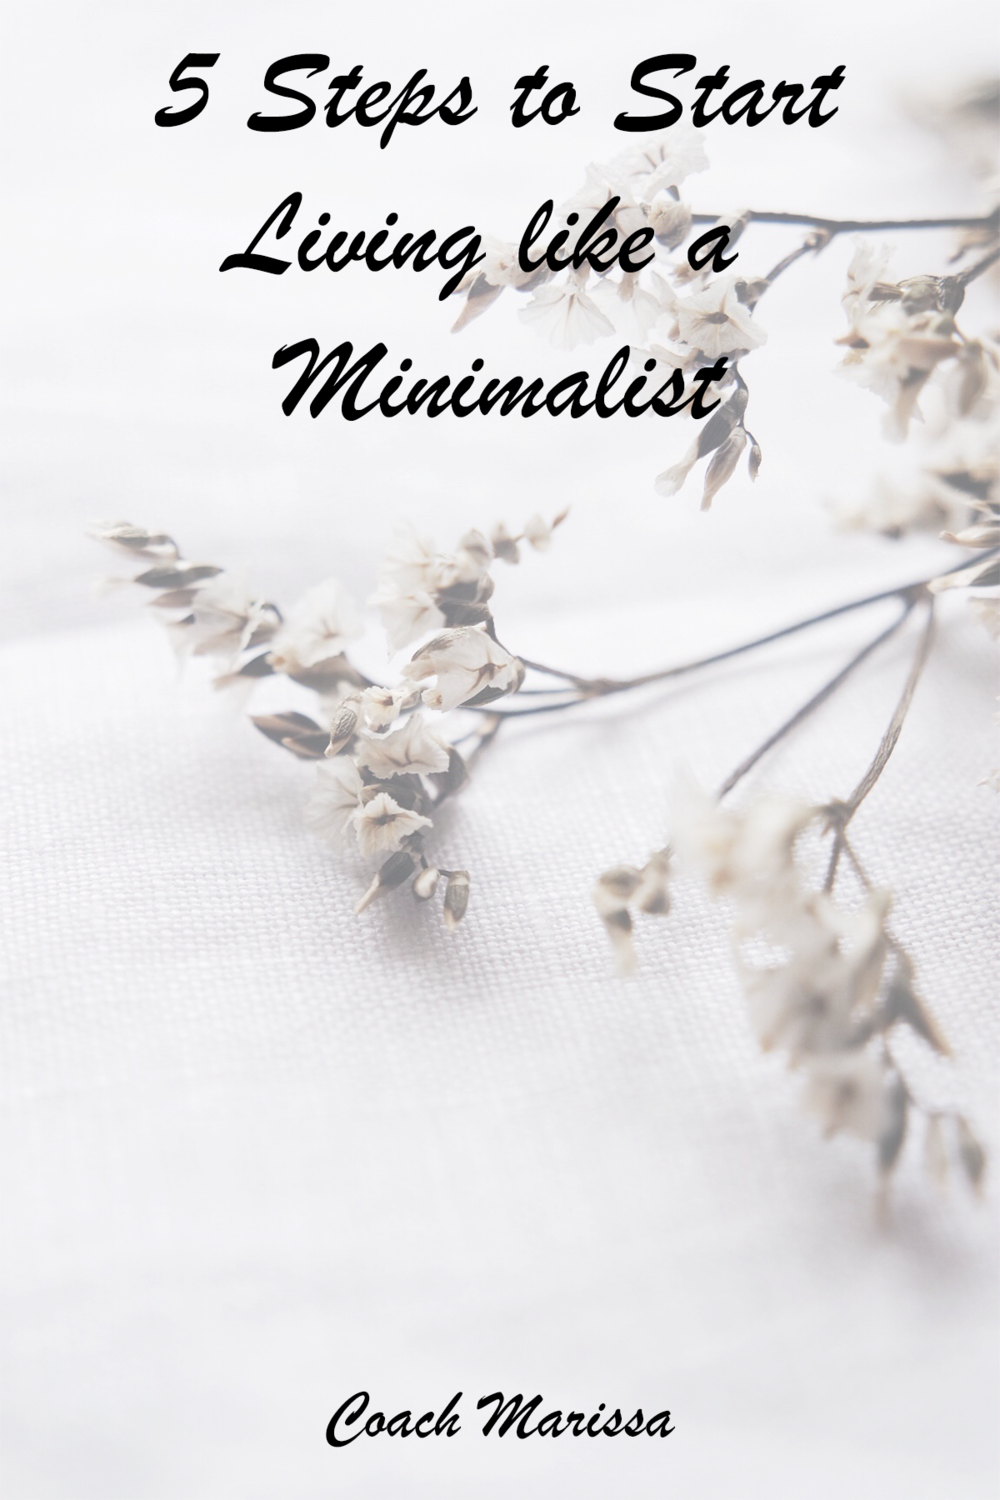 5 FIVE Steps to start living like a minimalist from a life coach, marissa jacobs